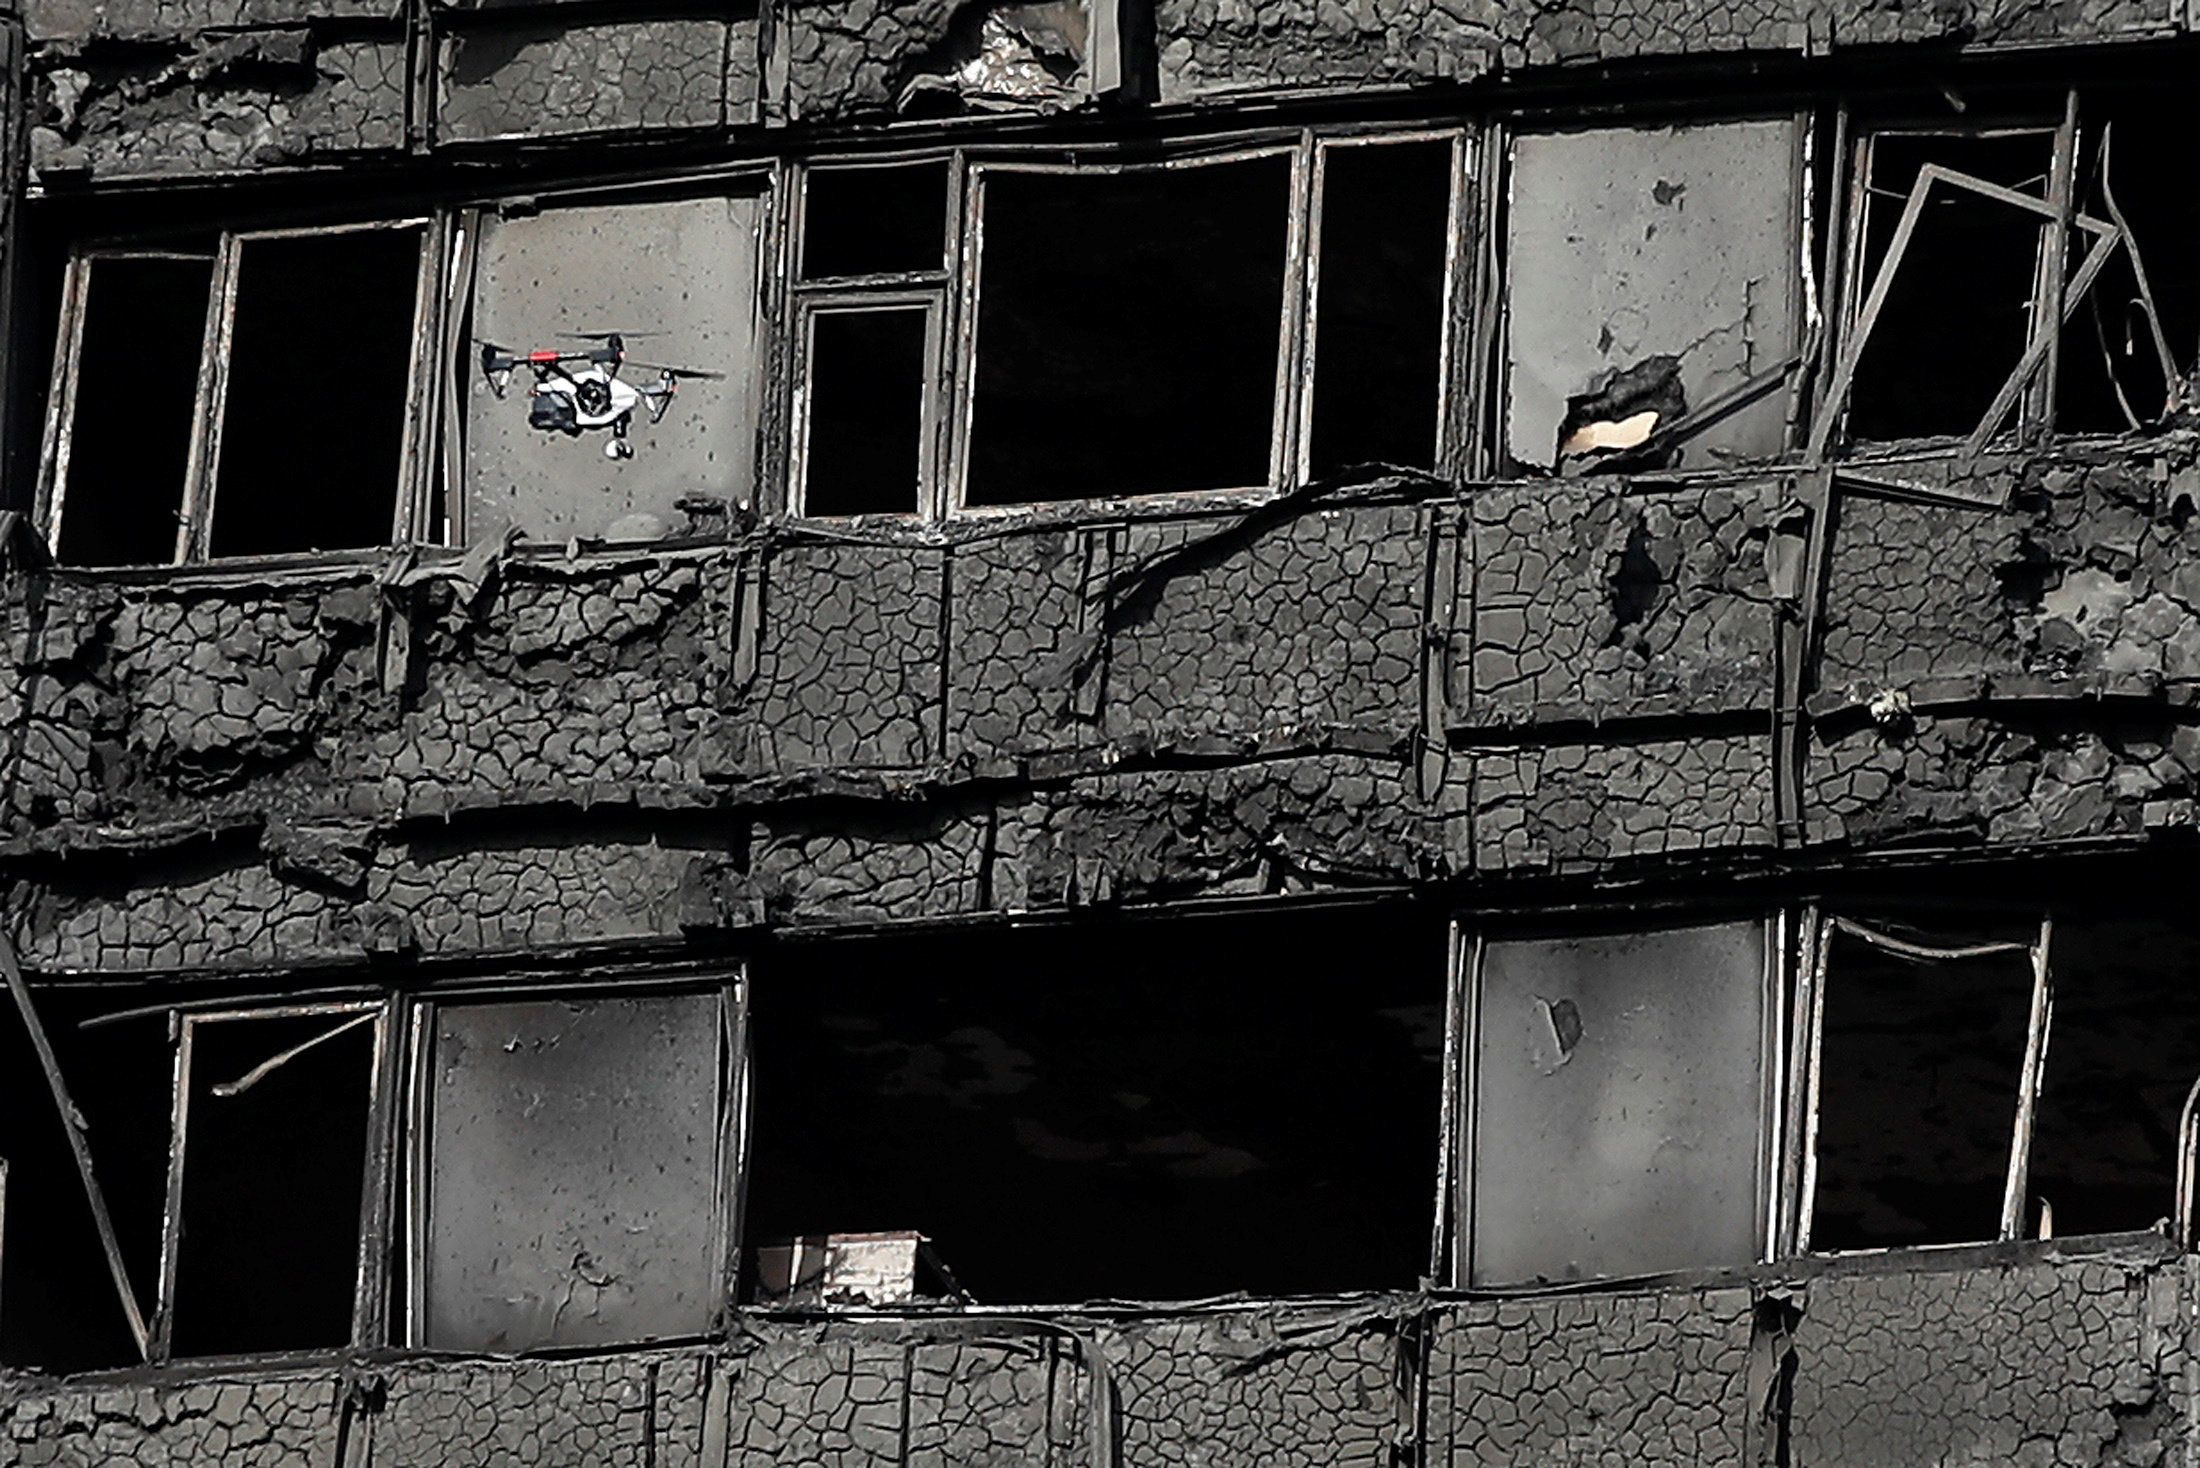 The burnt remains of cladding on the Grenfell